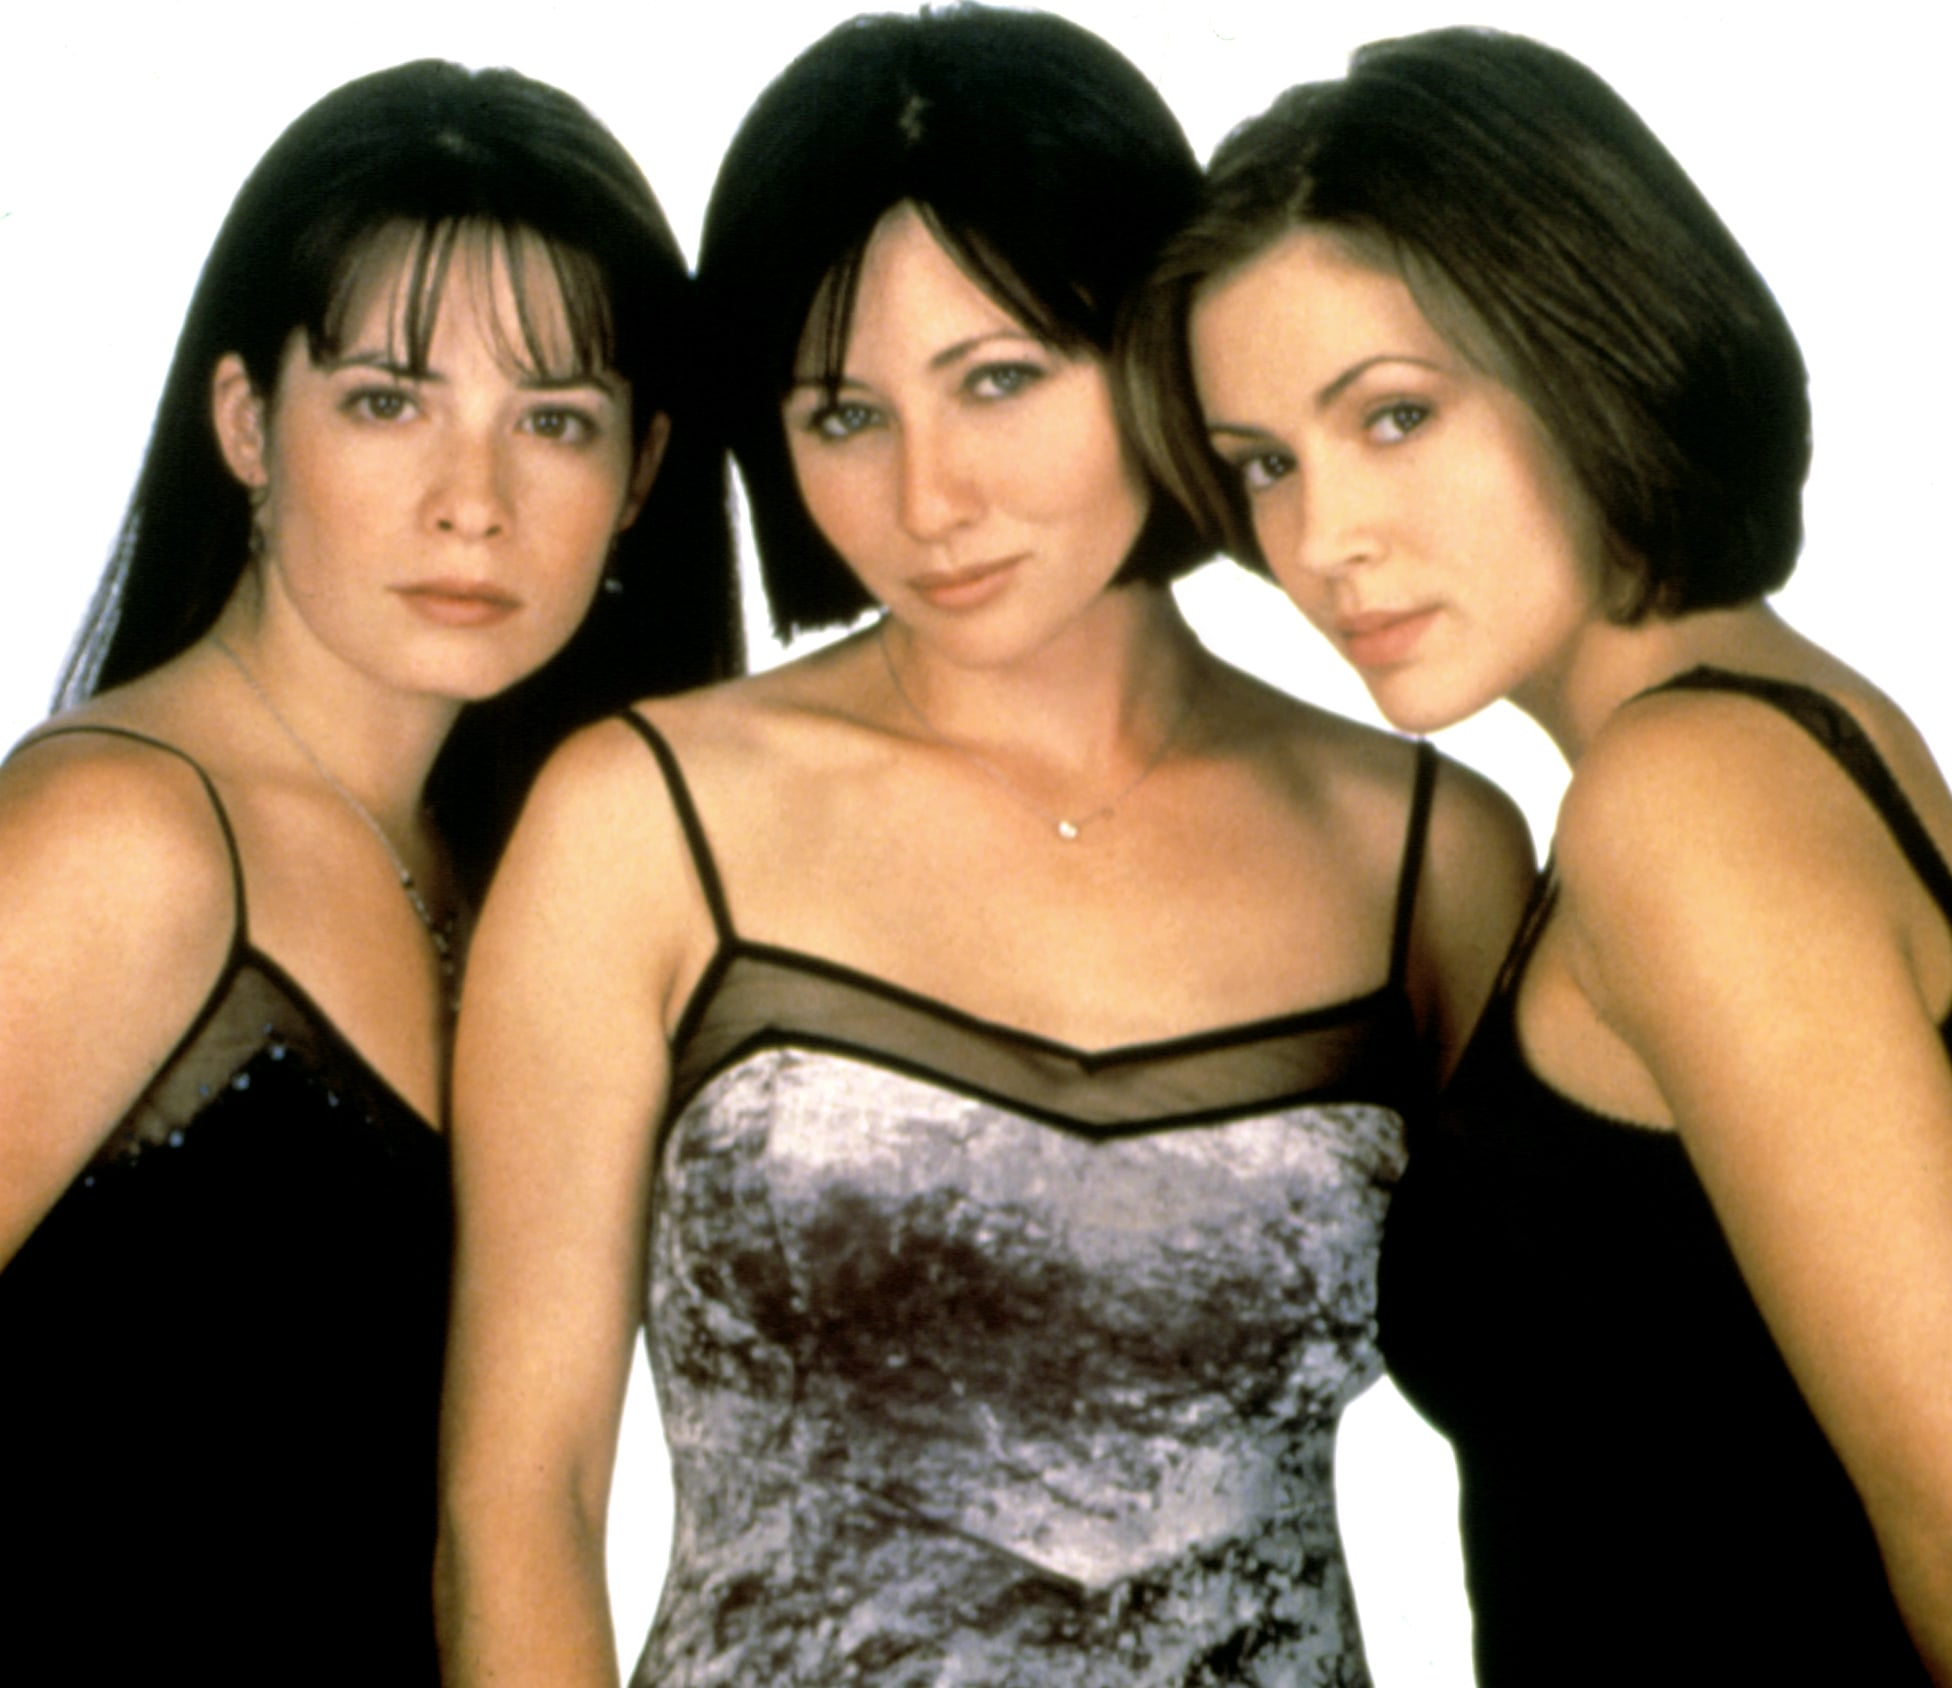 CHARMED, Holly Marie Combs, Shannen Doherty, Alyssa Milano, 1998--2006, photo:  Viacom / courtesy Everett Collection